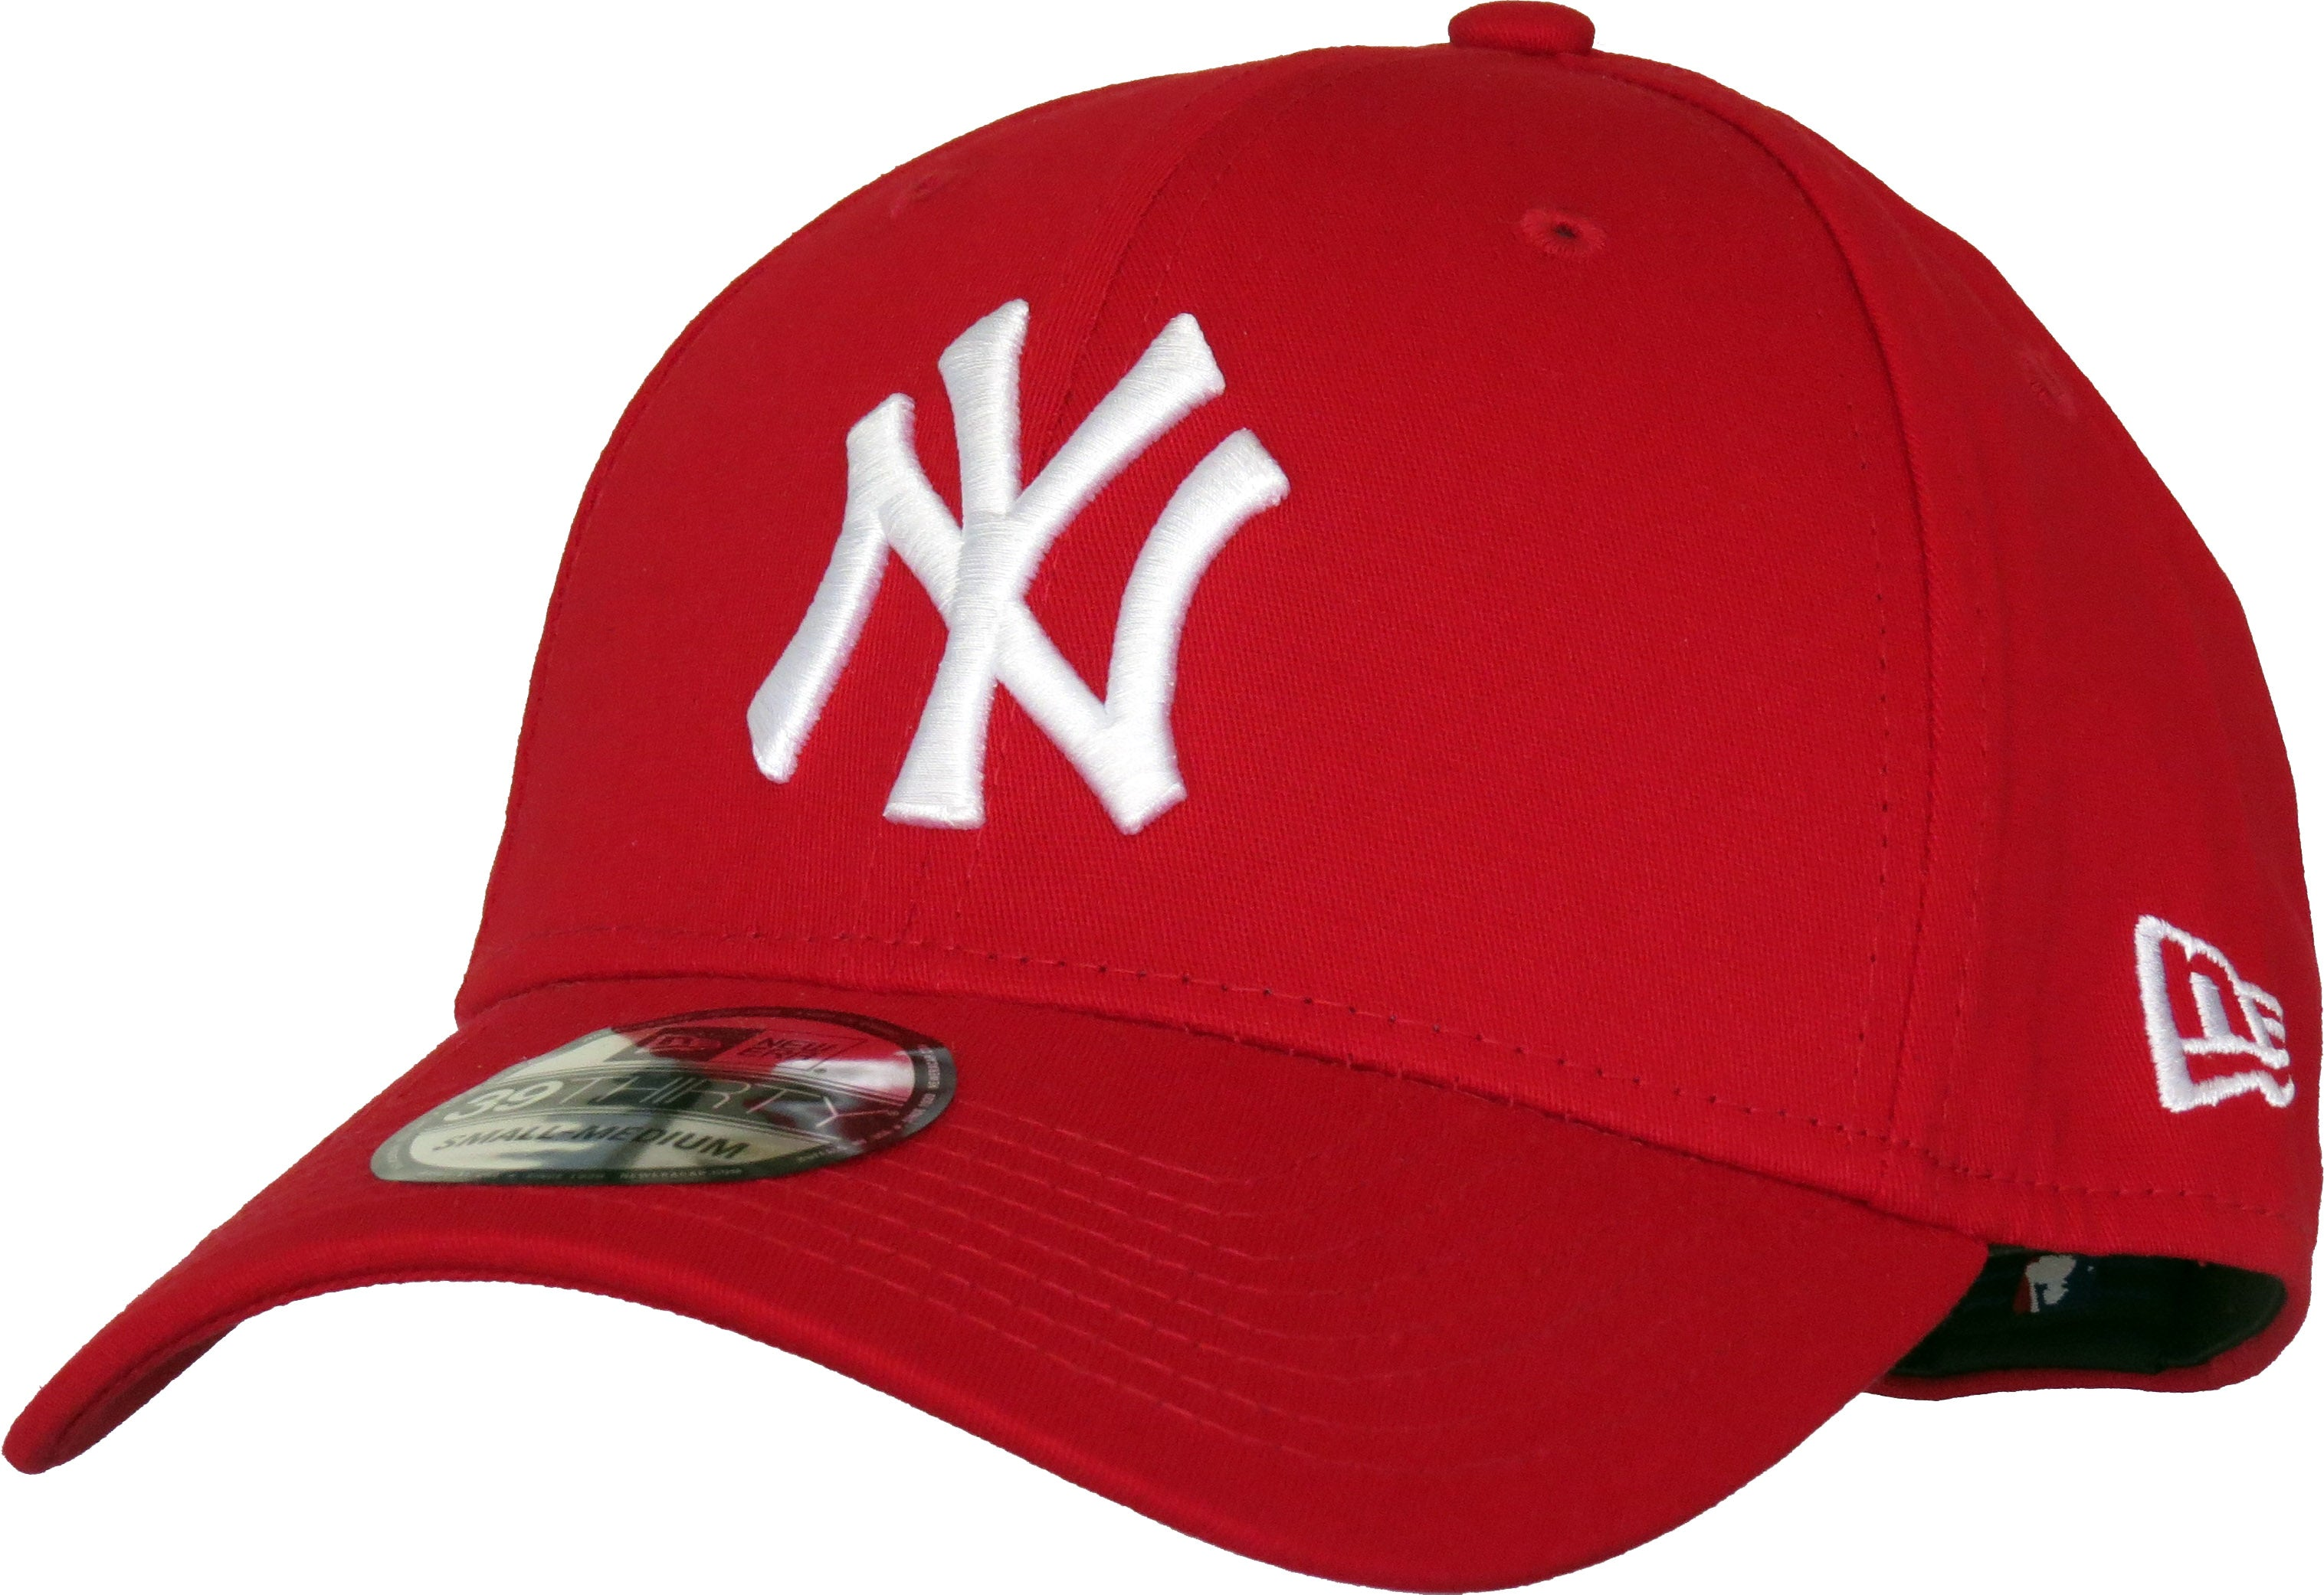 New Era 3930 League Basic NY Scarlet Stretch Fit Baseball Cap – lovemycap 81435d31e590